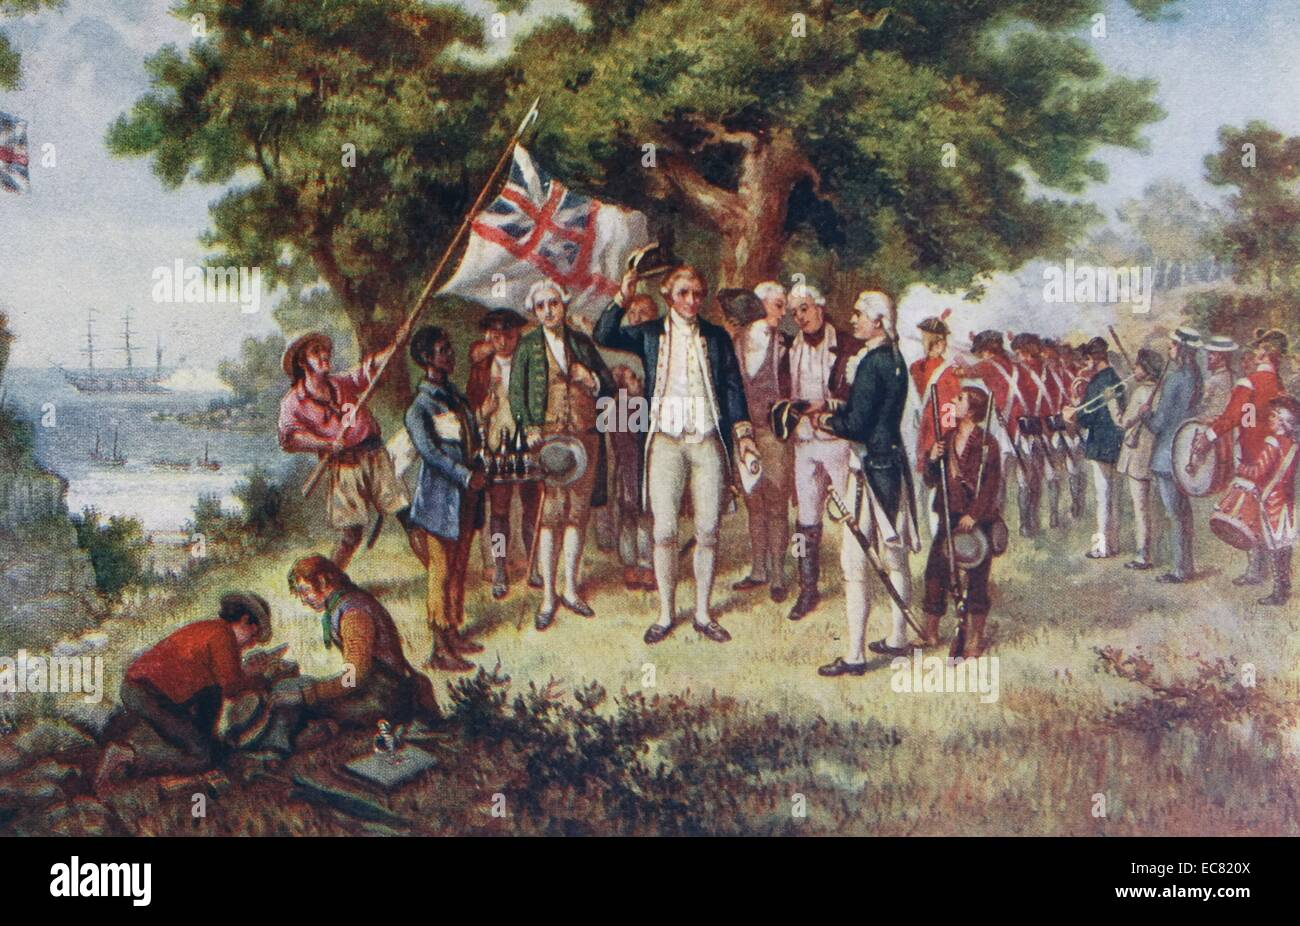 Captain James Cook, (1728 – 14 February 1779) British explorer, arriving at  Botany Bay; Australia, 1770